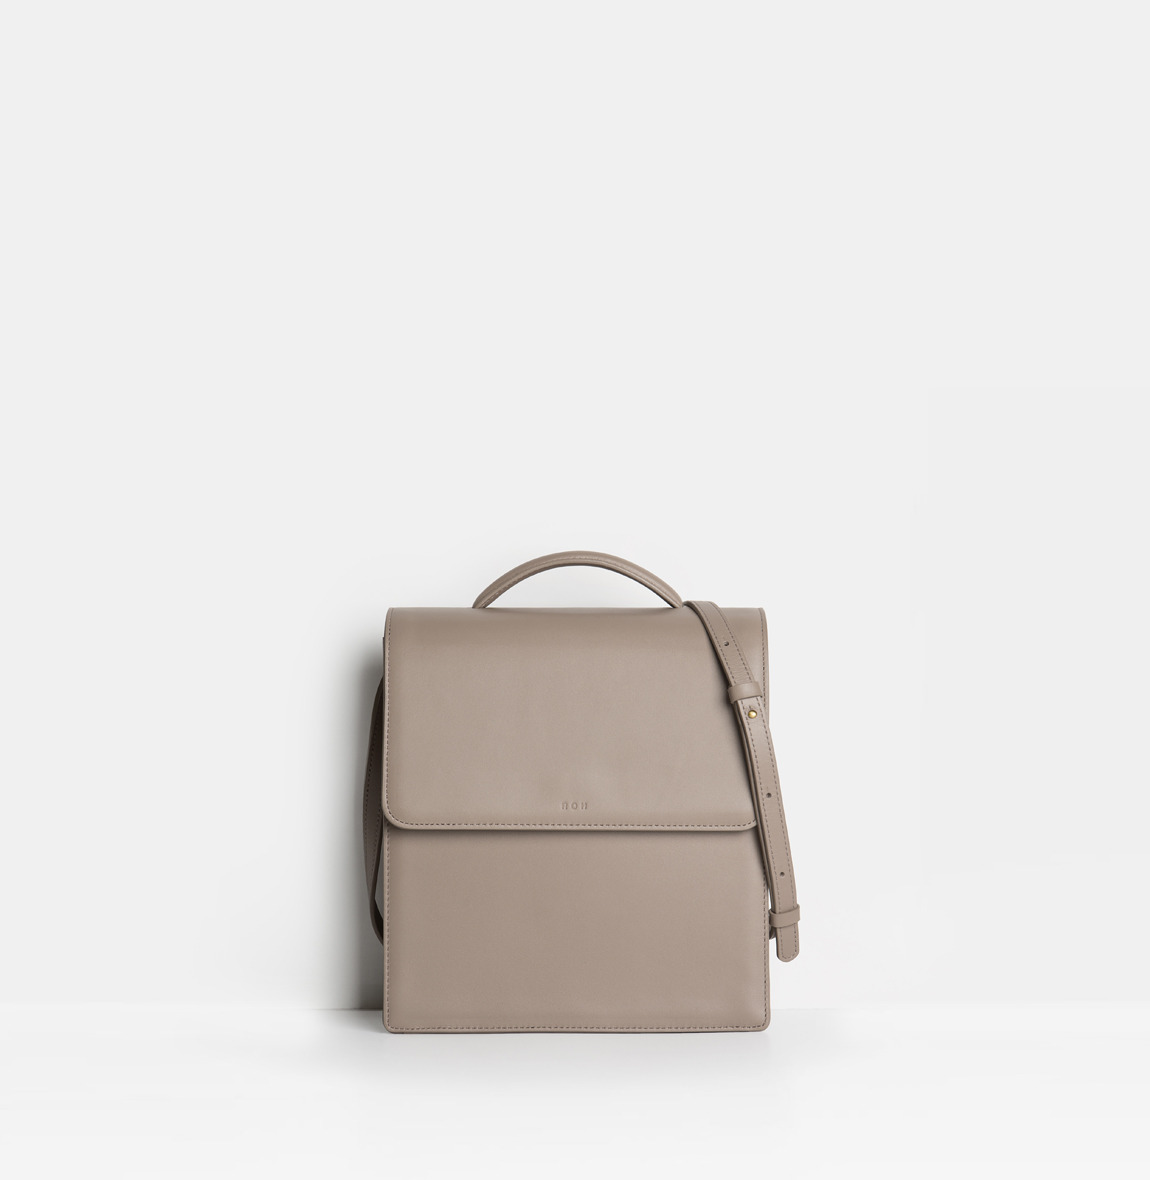 Satchel Bag Beige